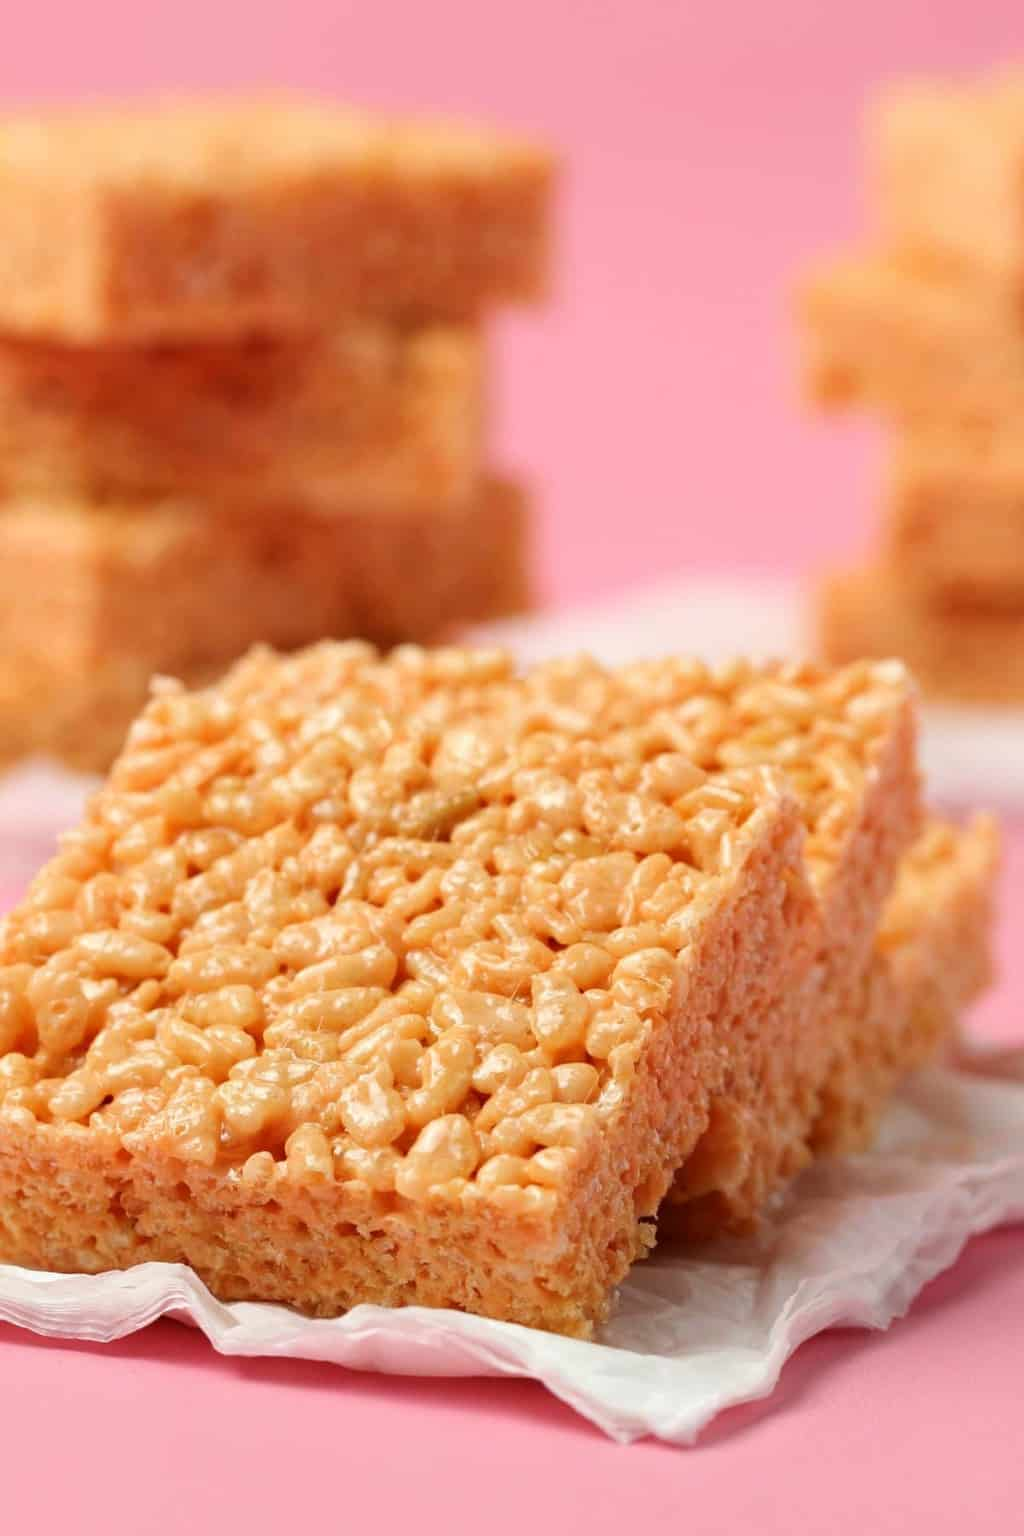 Vegan rice krispie treats in a row on white tissue paper.